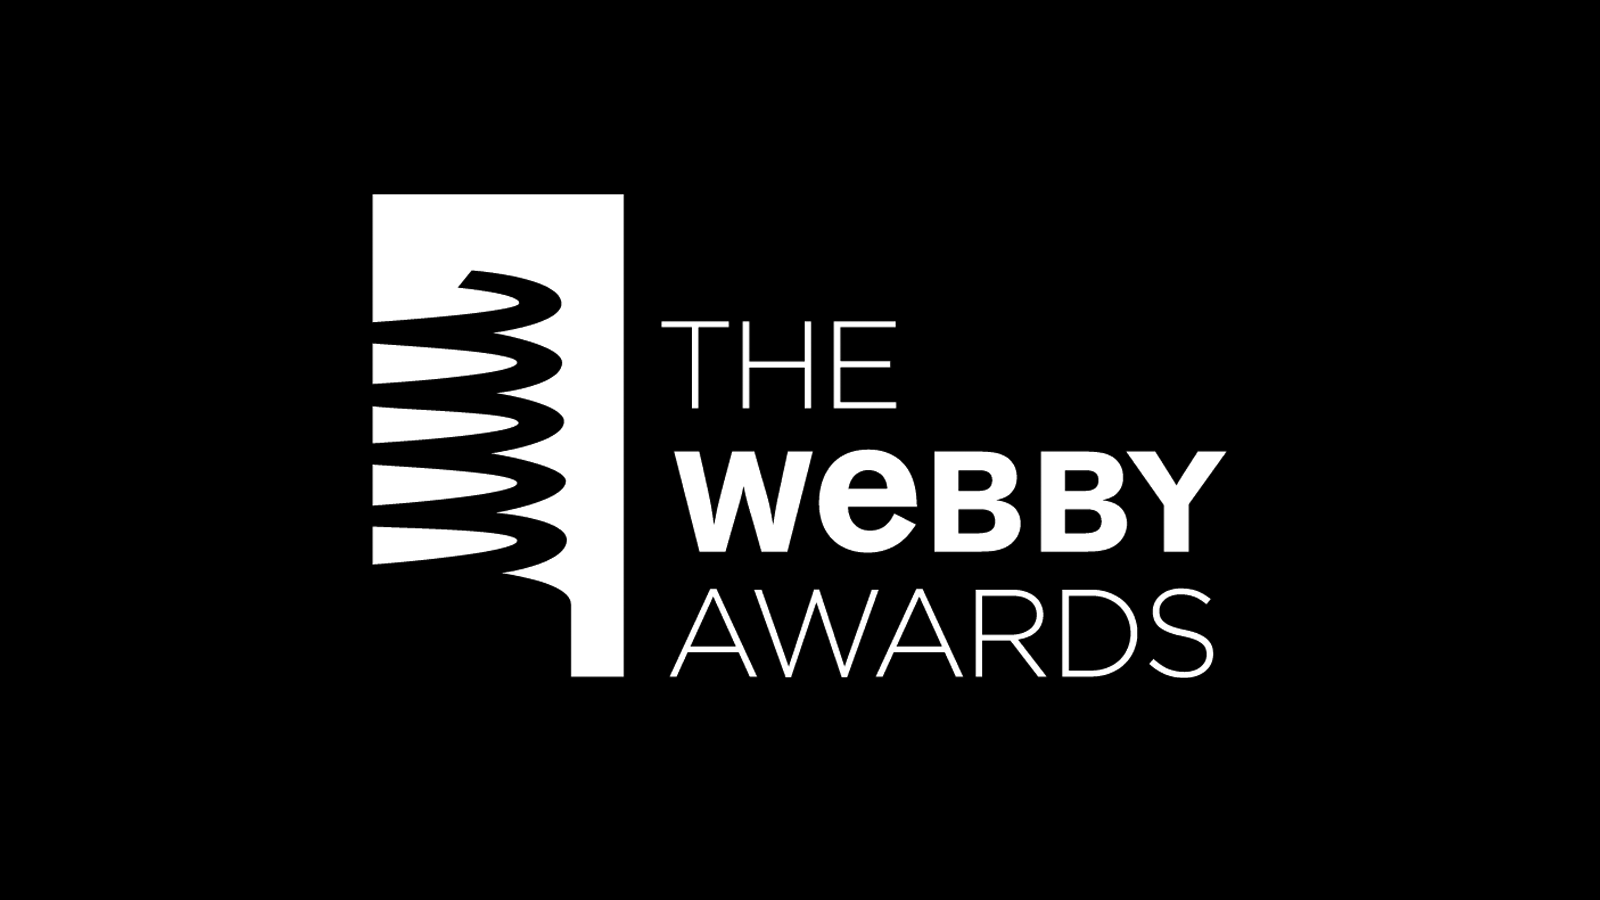 25th Annual Webby Awards